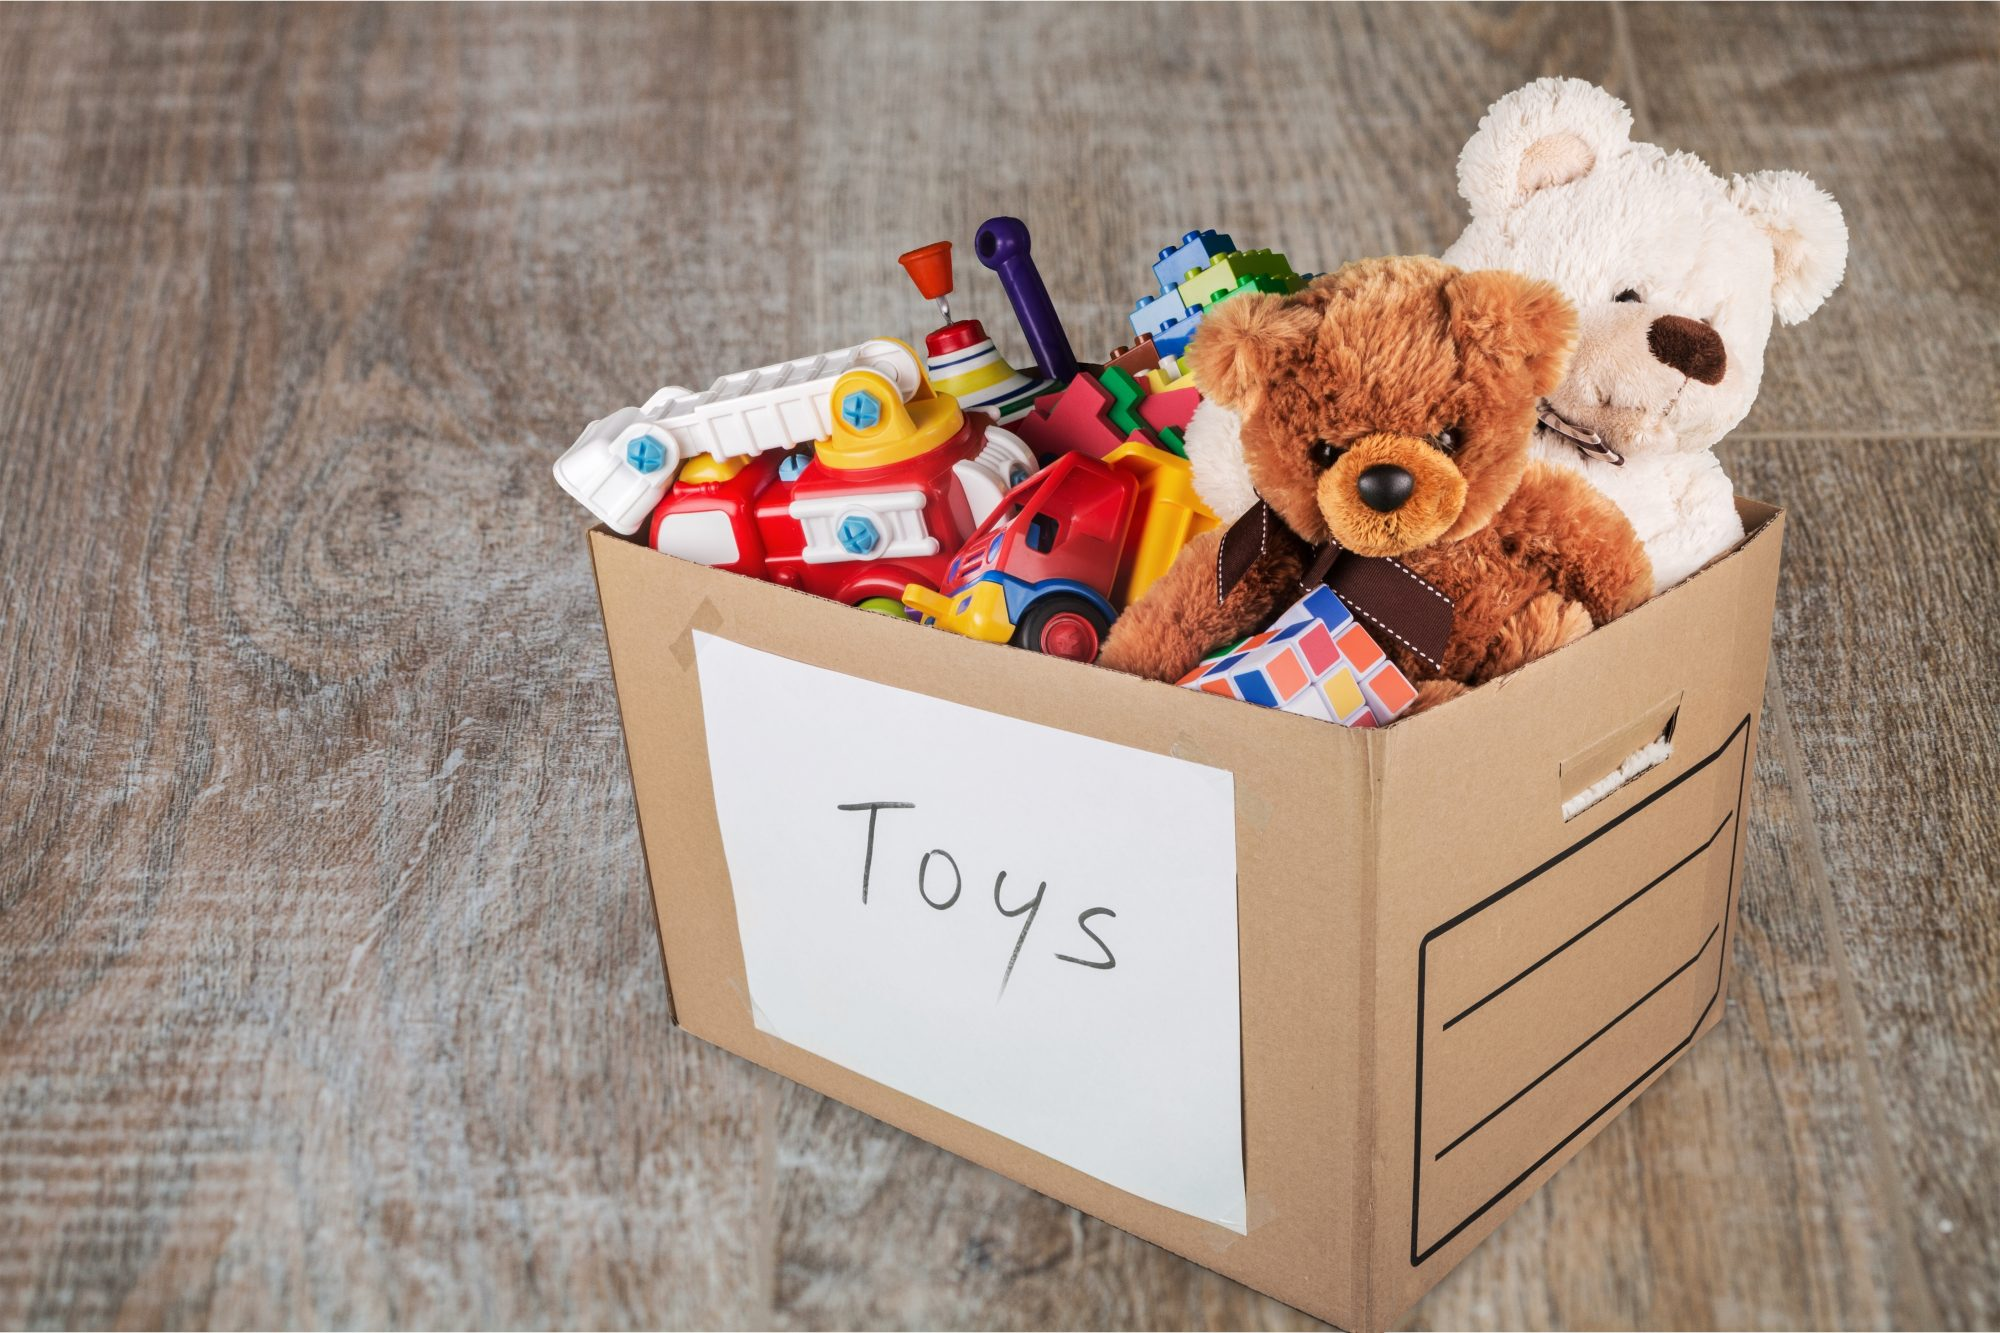 toys and stuffed animals in donation box